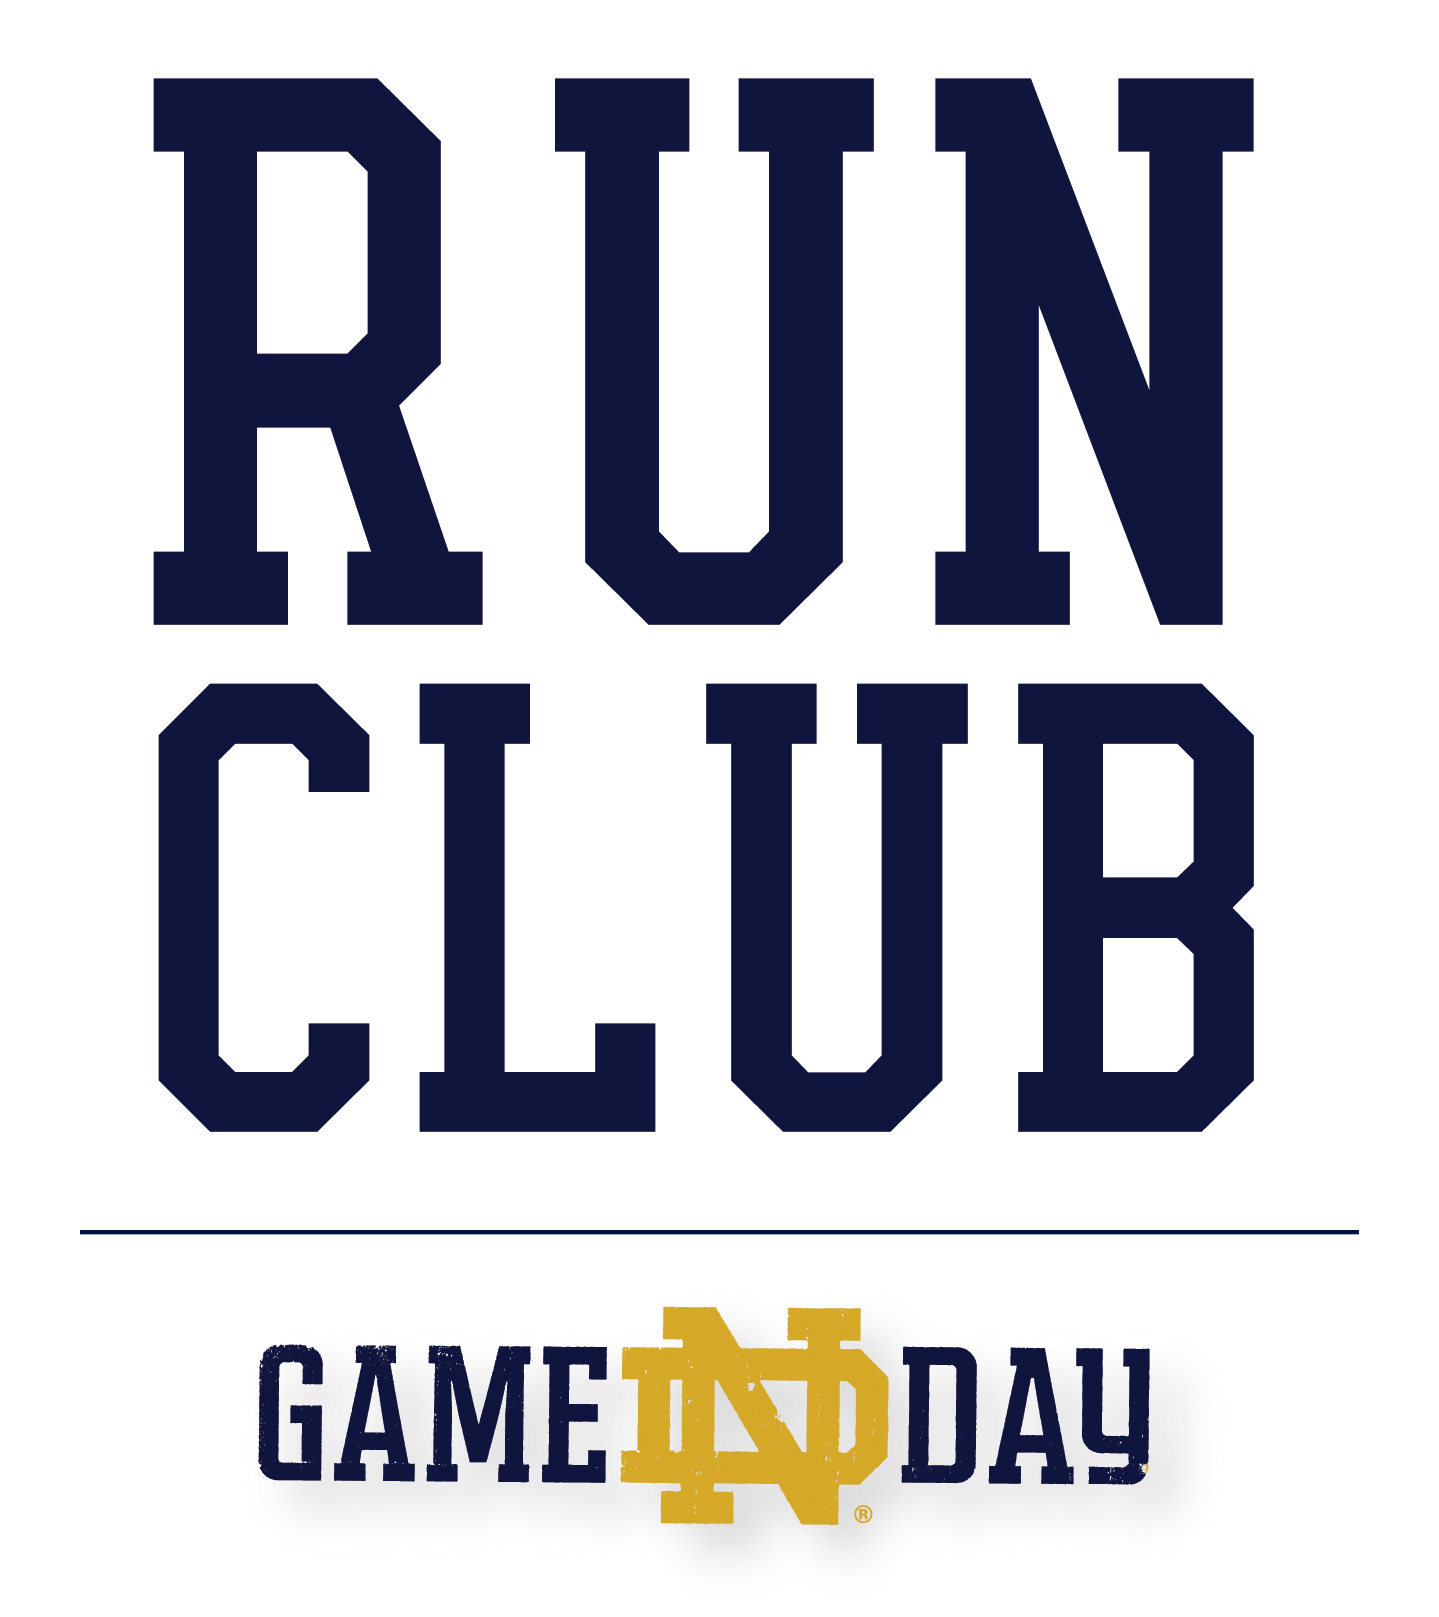 images.raceentry.com/infopages/game-day-run-club-navy-infopages-1679.jpg